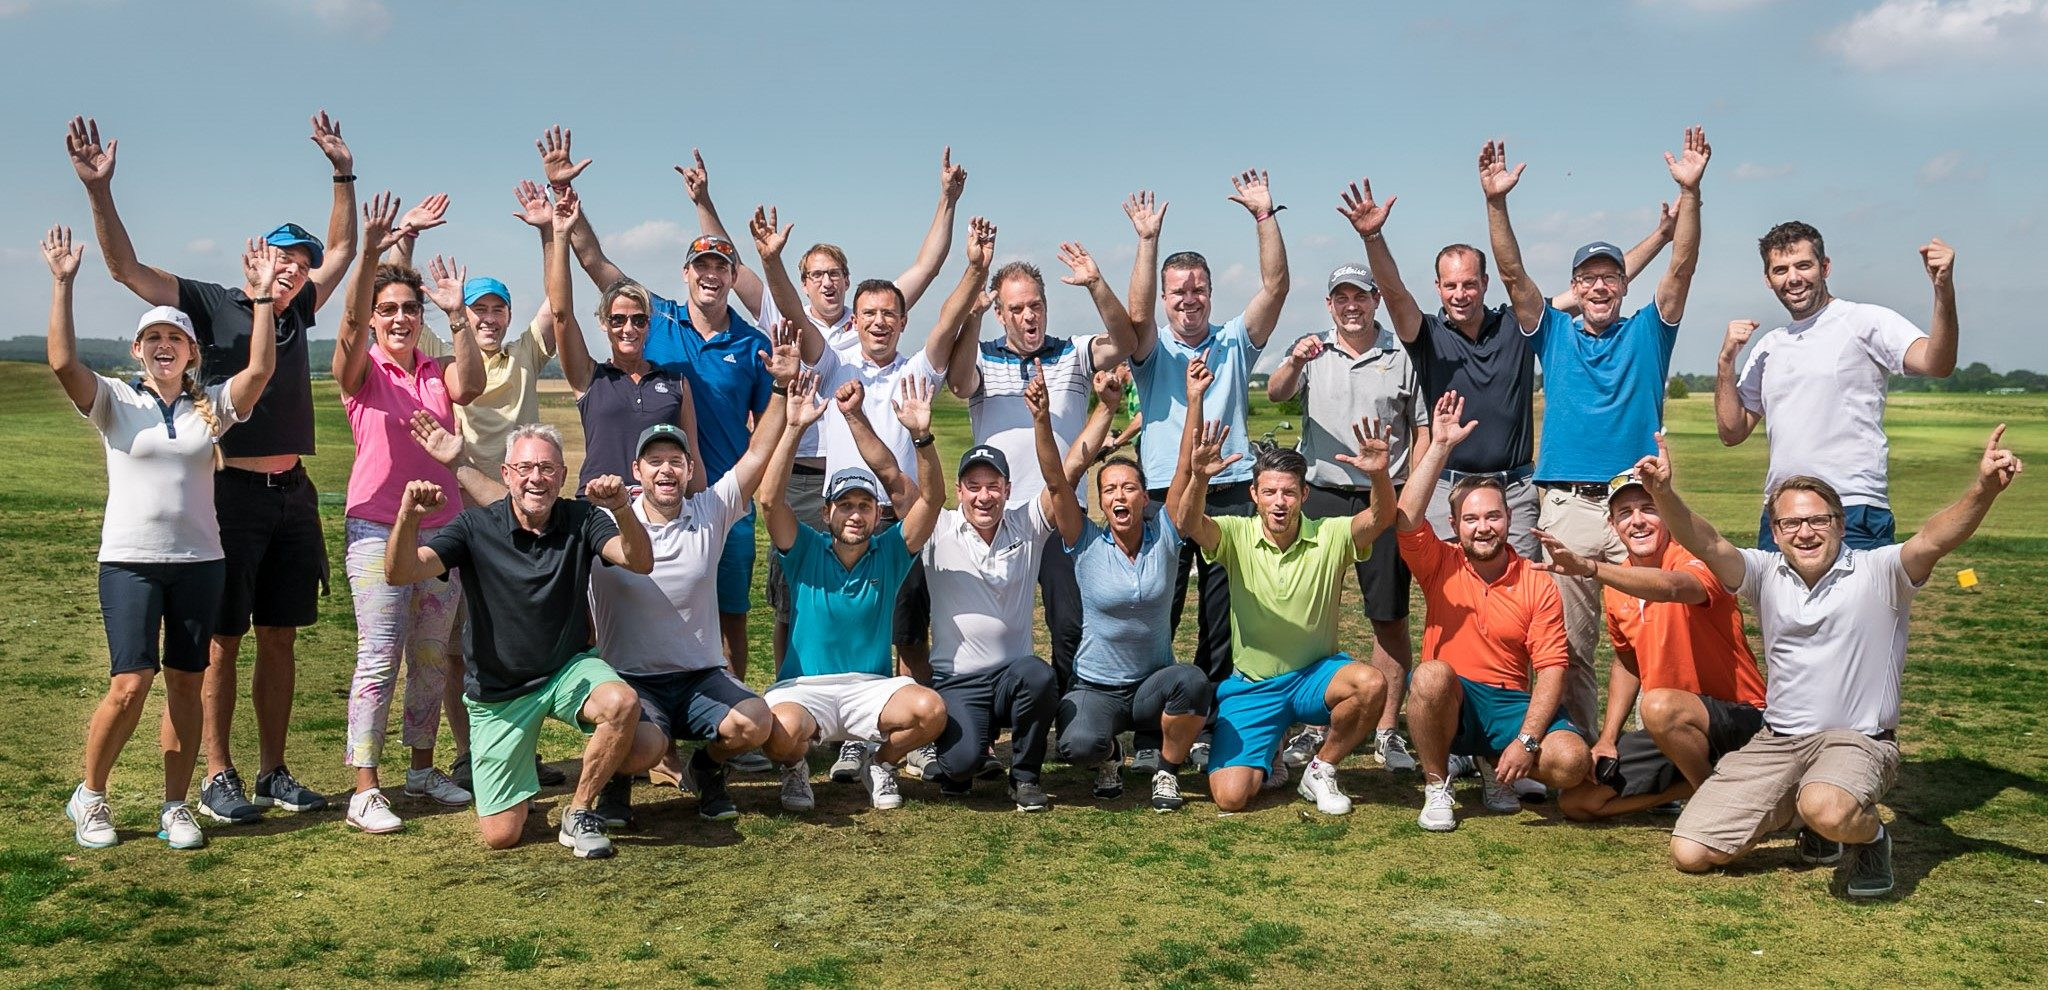 ⛳OS.GolfCUP 2019 powered by Scompler – das Golfturnier für digitalisierte Longhitter – 22. August – Köln